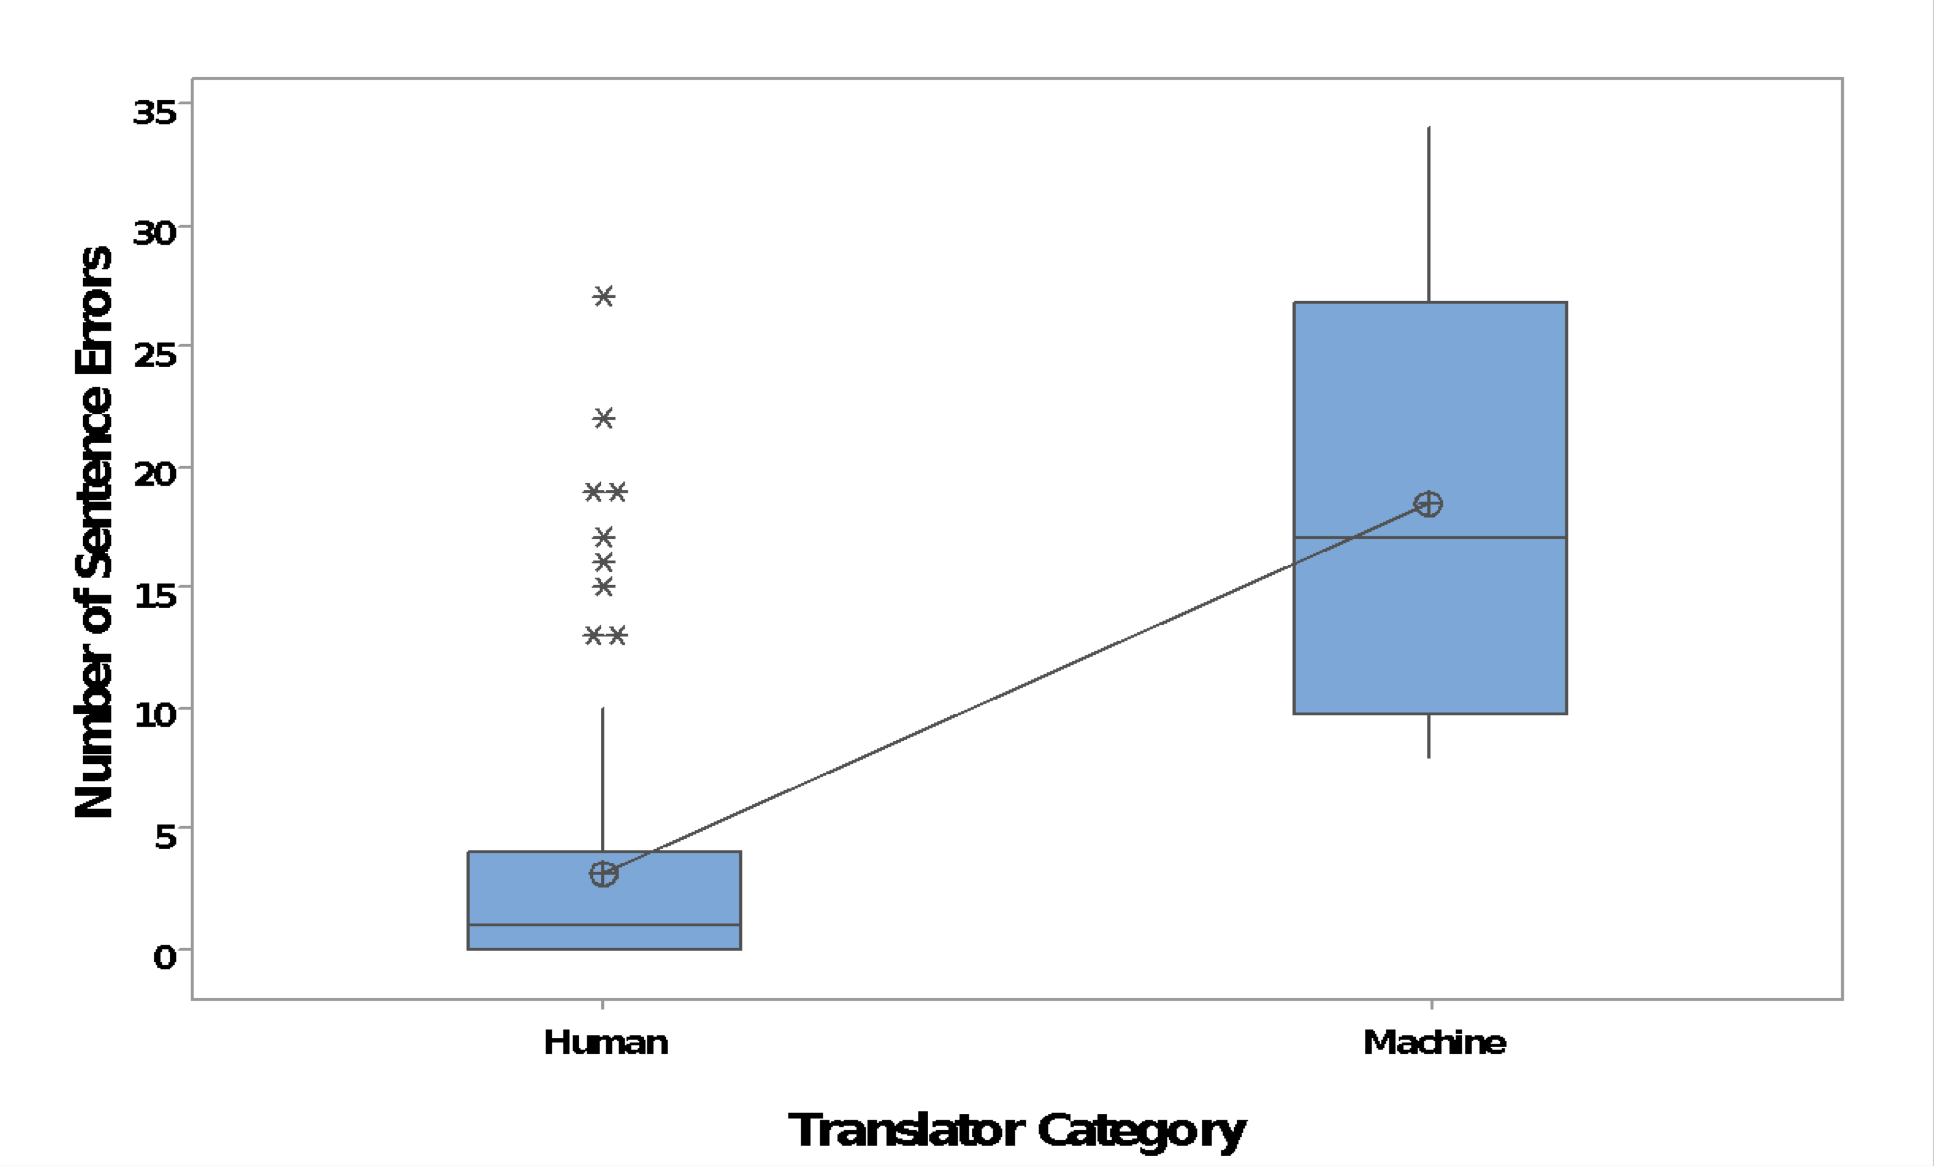 human vs. MT accuracy of phrase and sentence translation tests